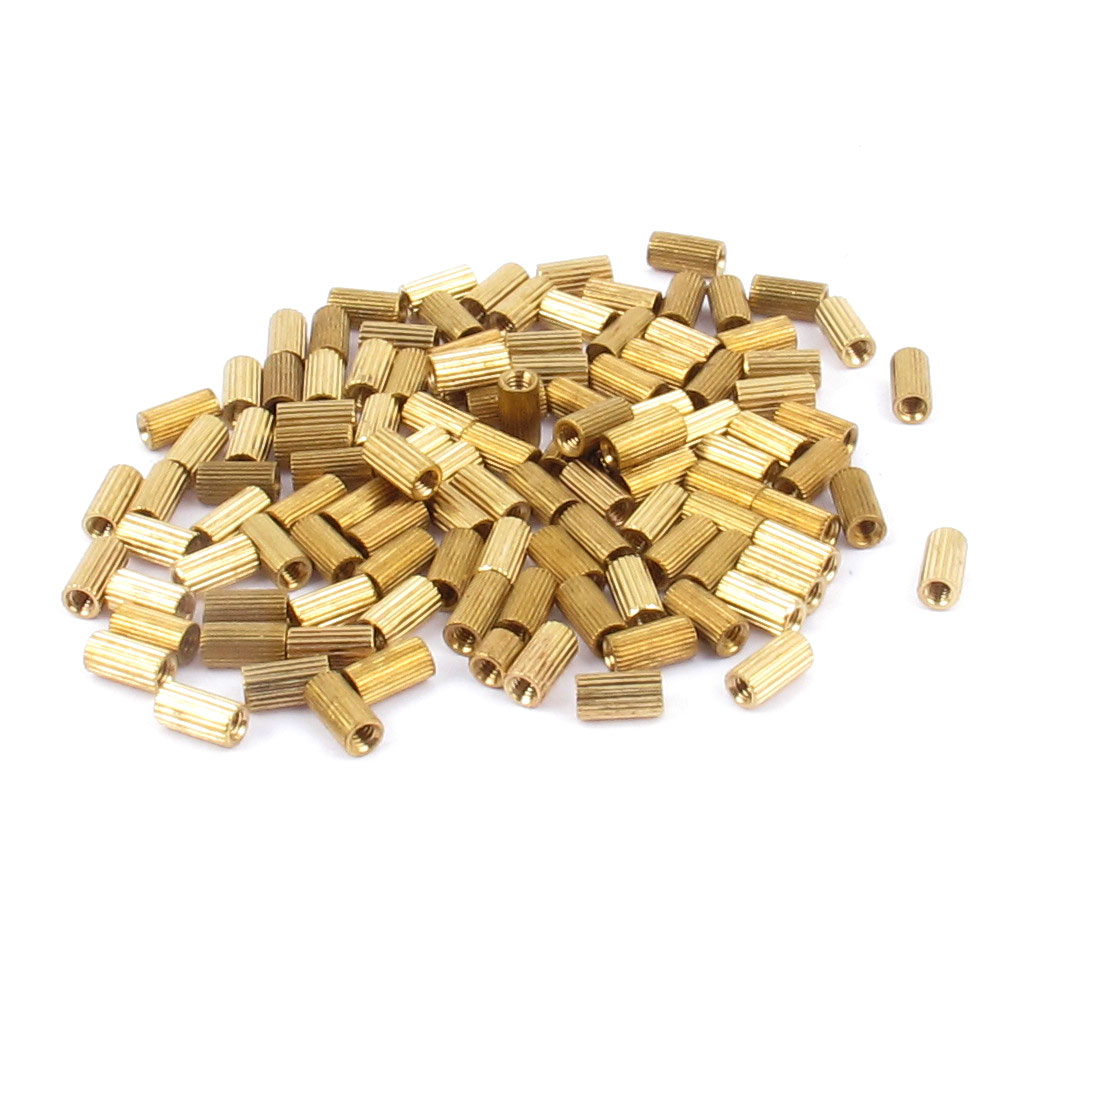 115pcs 6mm Long M2 Female Thread Brass Cylinder Standoff Spacer Pillar for PCB Motherboard